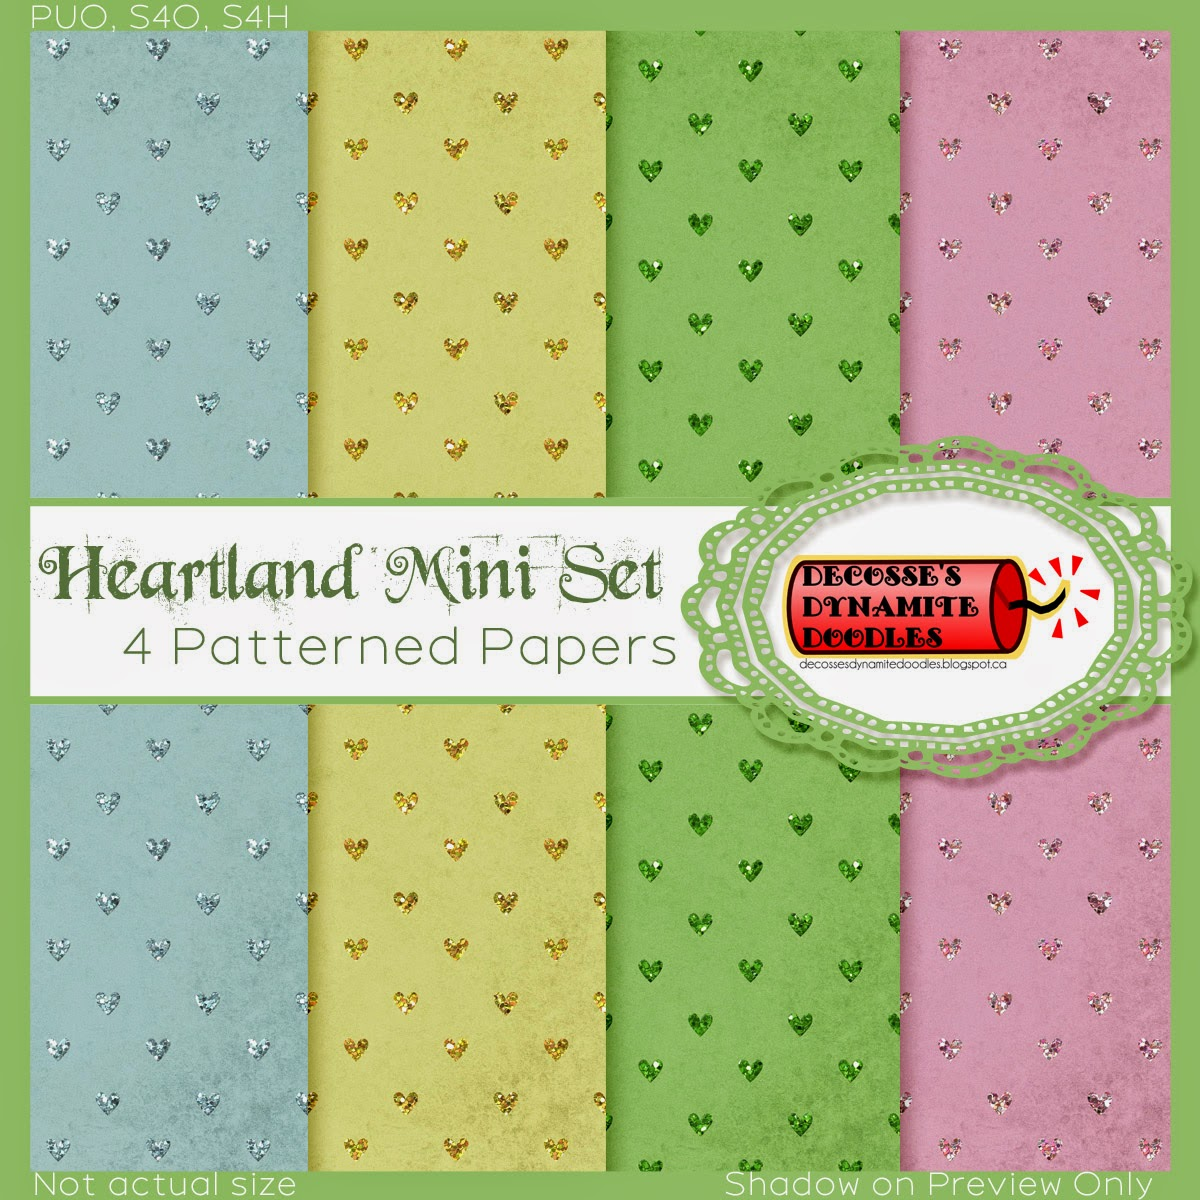 http://buyscribblesdesigns.blogspot.com/2015/02/ddd-heartland-mini-kit.html